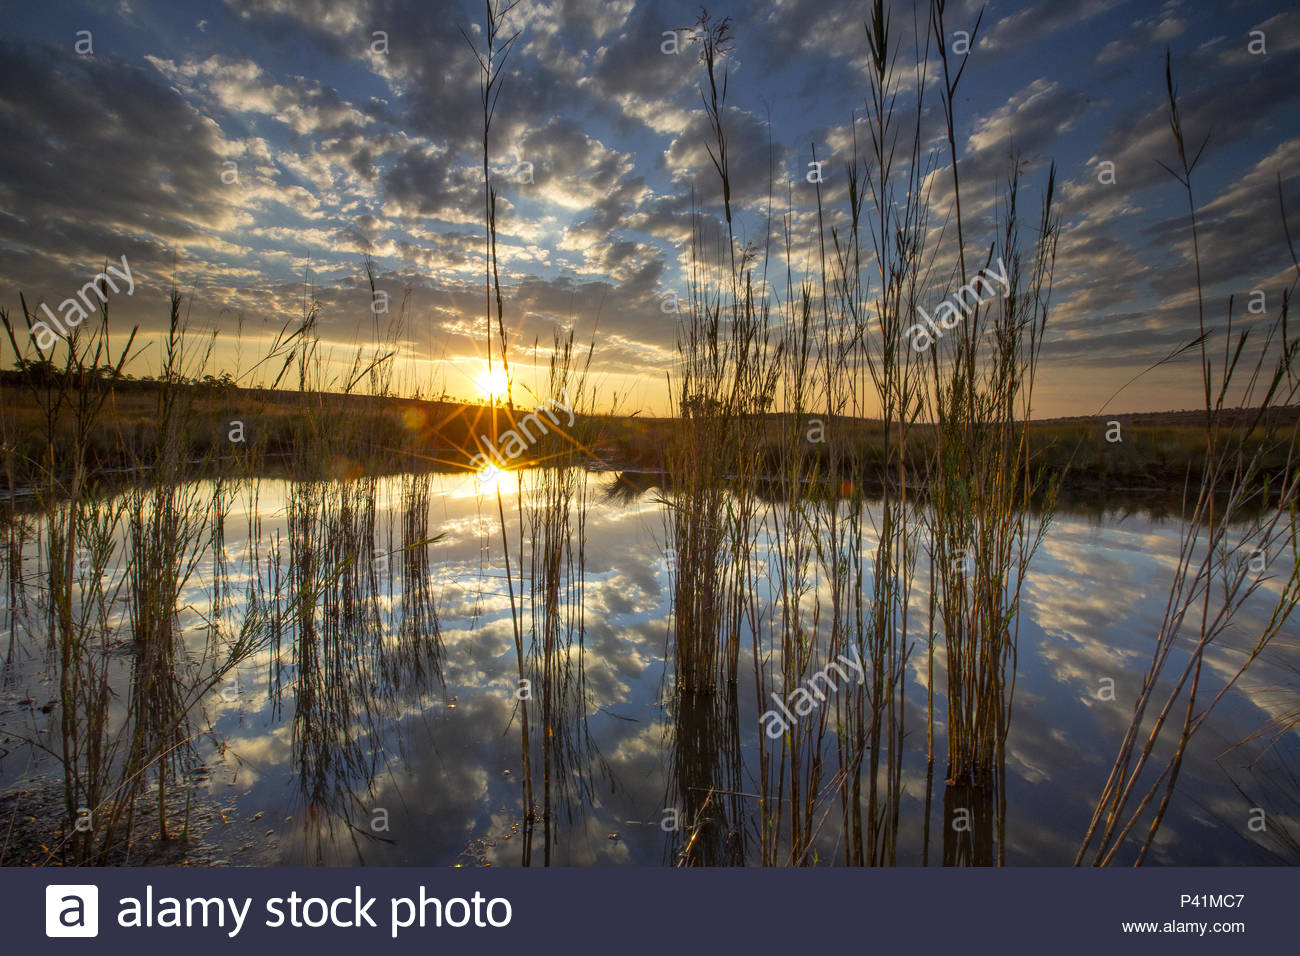 Clouds reflected on a pond in the Okavango Delta. - Stock Image